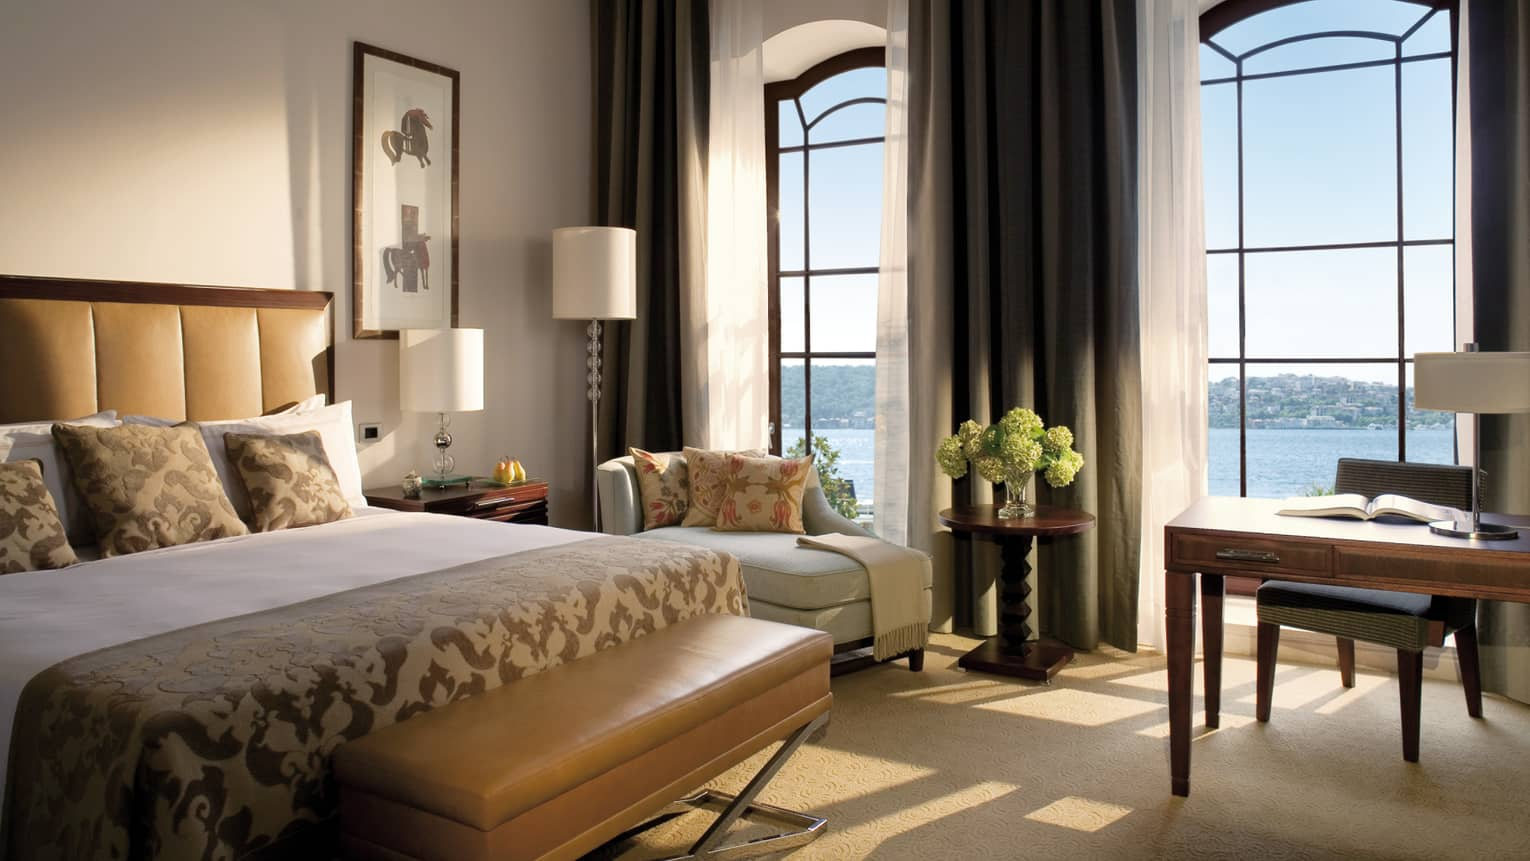 The Palace Bosphorus Room bed with padded brown headboard, bench, sunny bay windows with sea views